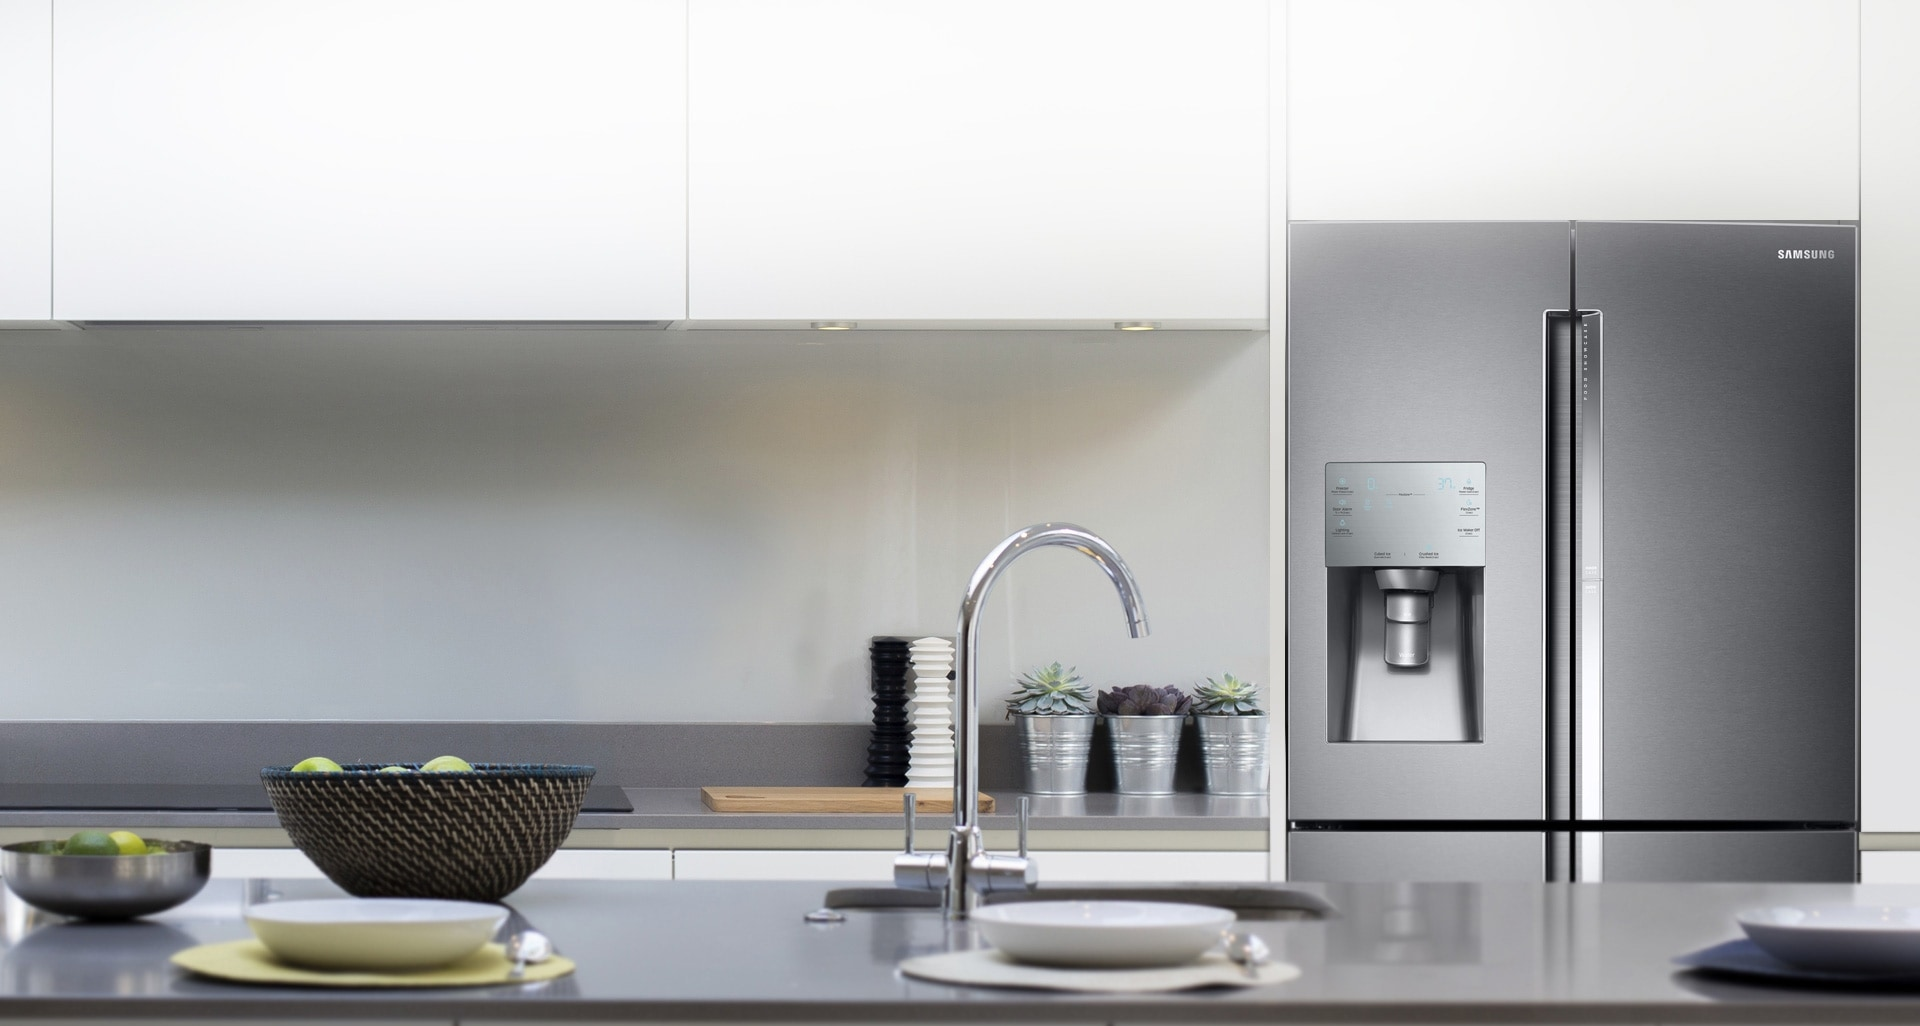 An image showing how the Samsung T9000 Refrigerator perfectly fits into a kitchen interior.